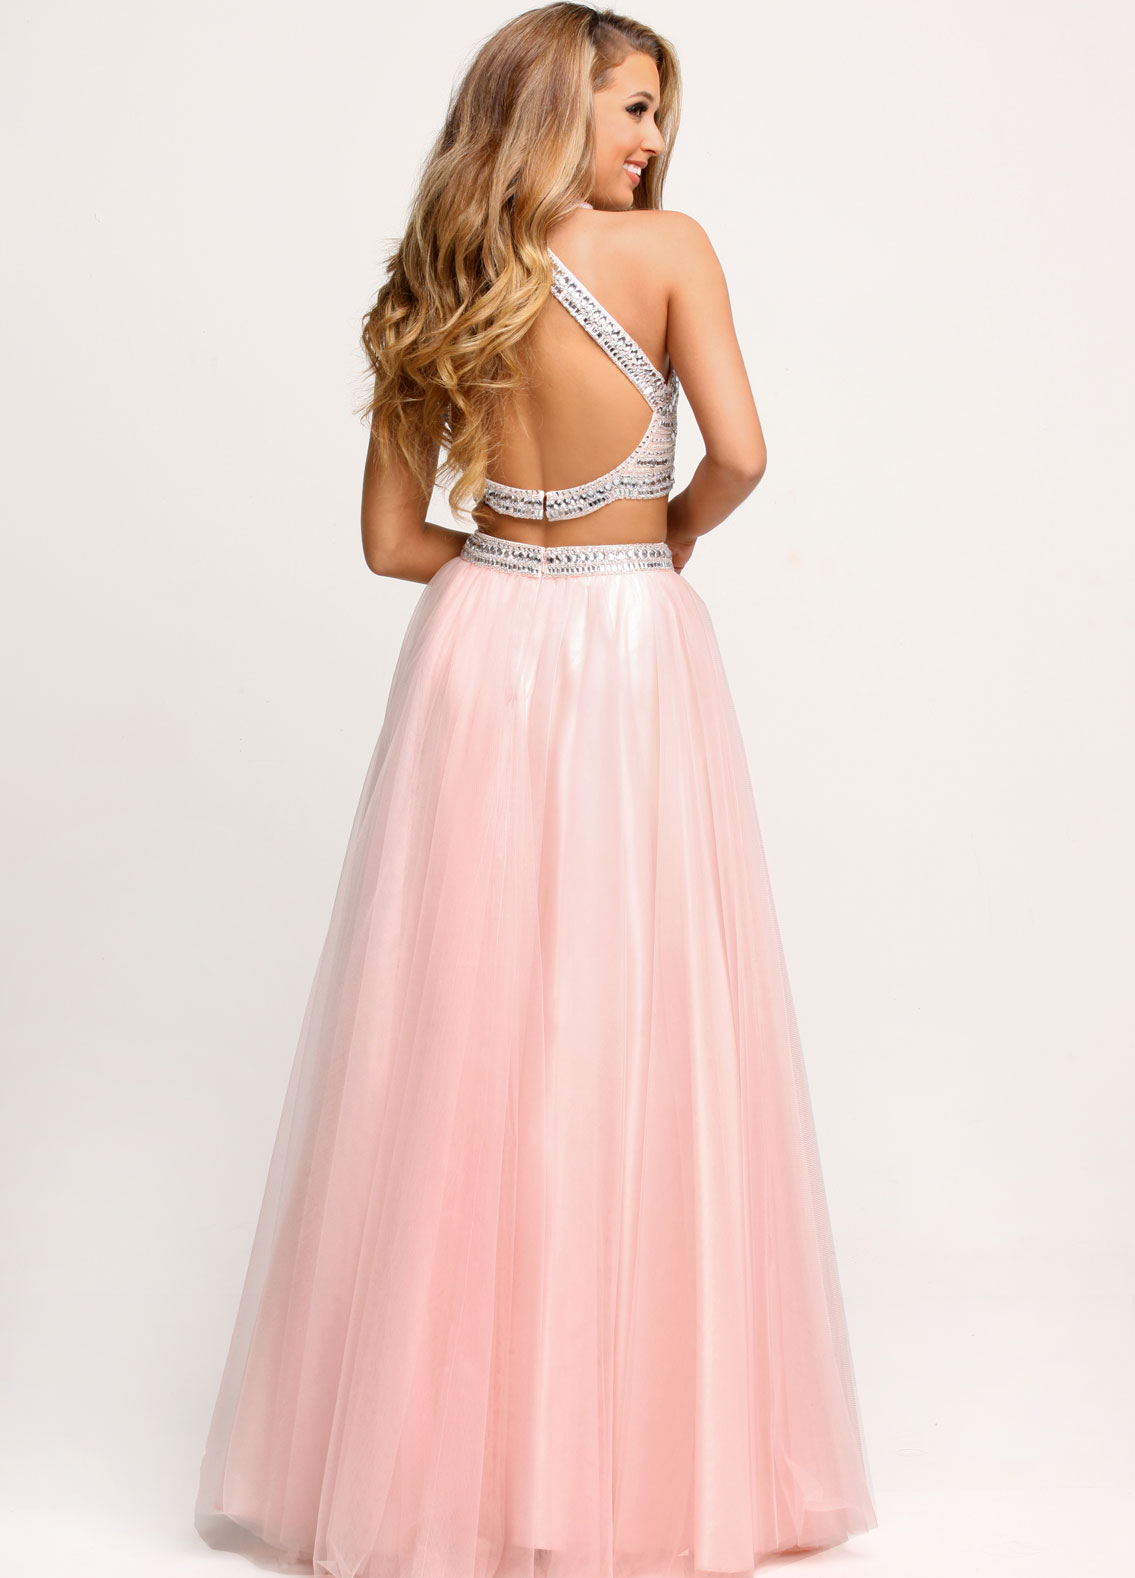 Image showing back view of style #71686